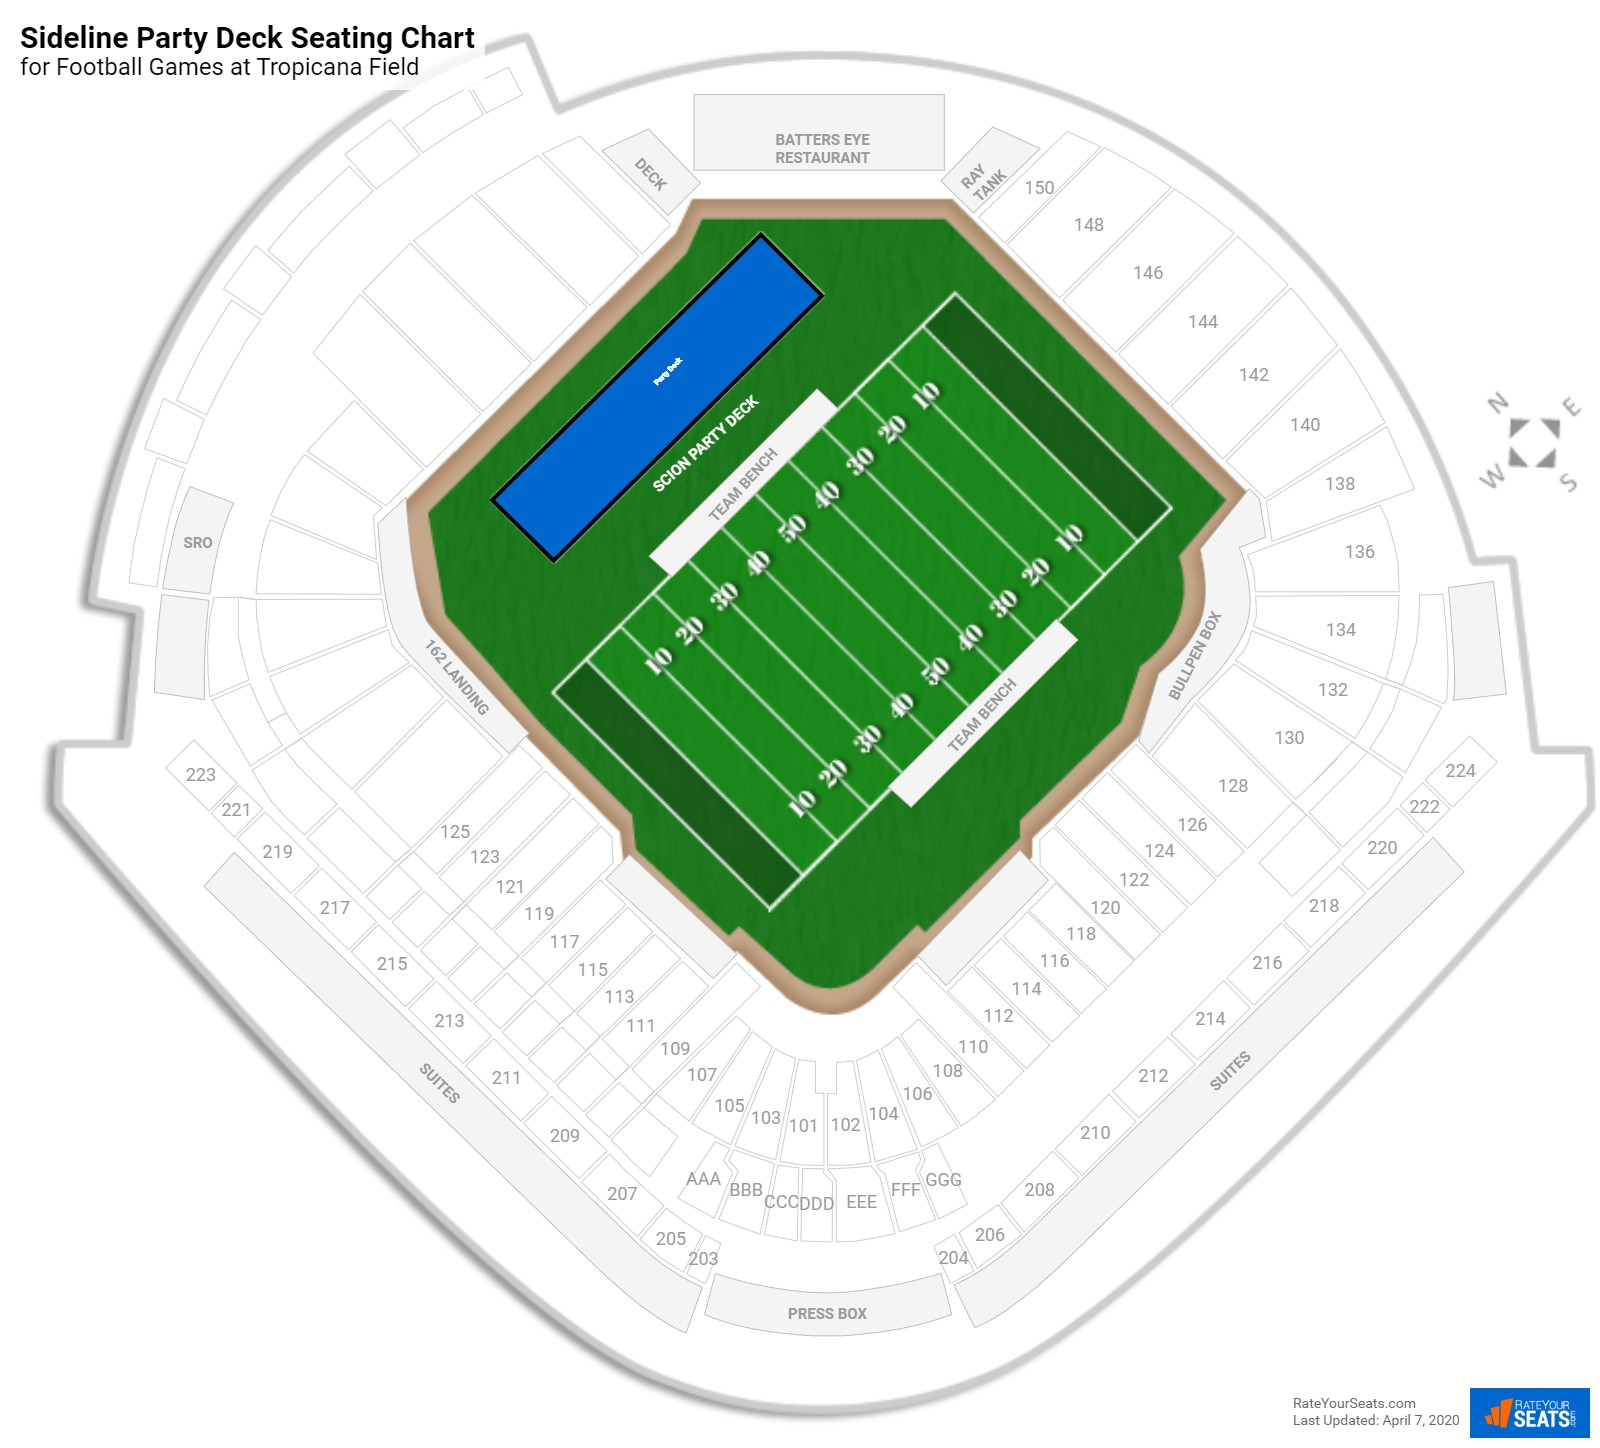 Tropicana Field Sideline Party Deck seating chart